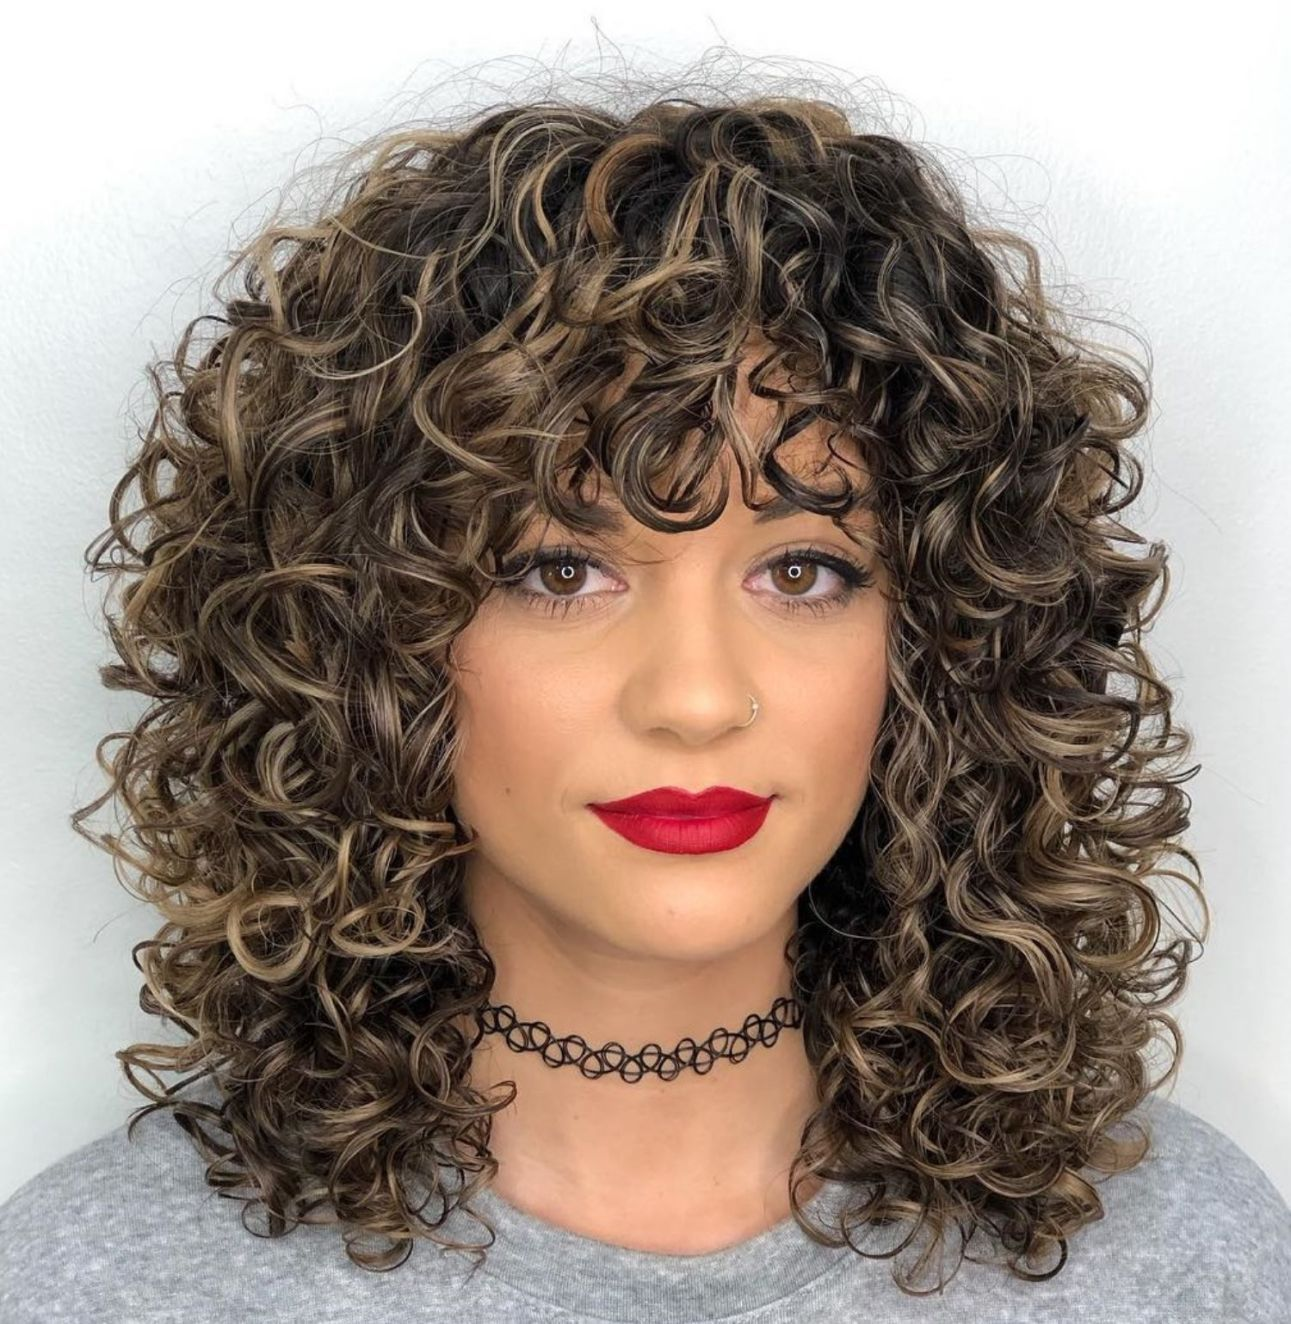 Mid Length Curly Hairstyle With Curly Bangs In 2020 Medium Curly Hair Styles Curly Hair Styles Naturally Curly Hair Styles